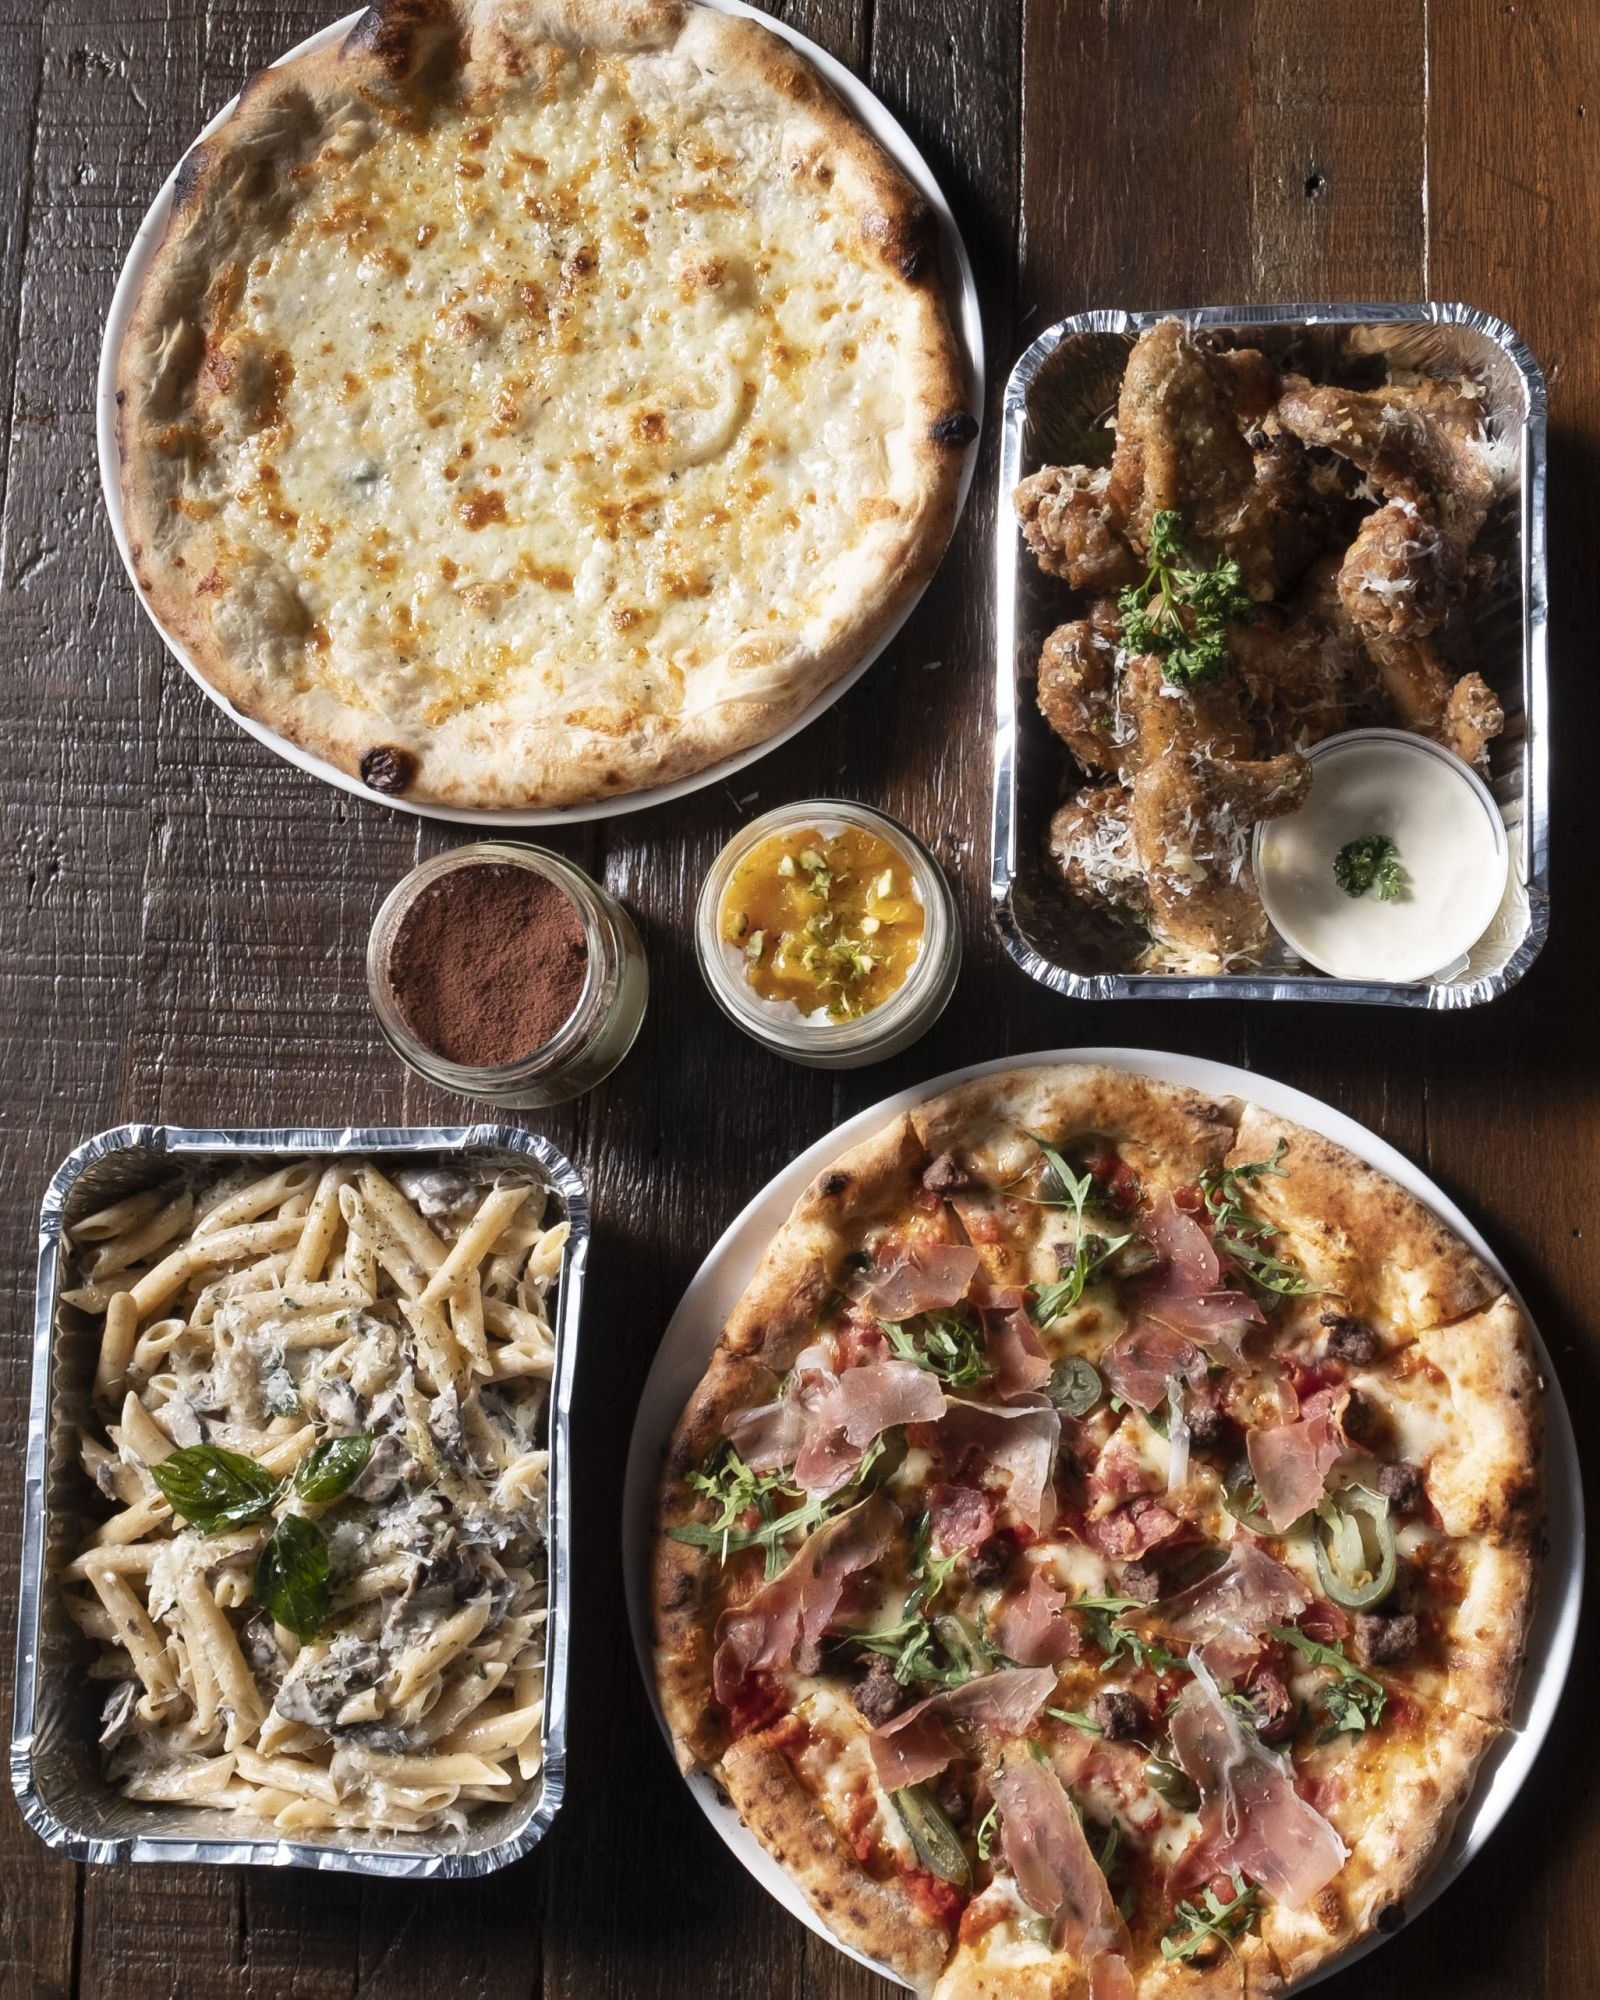 If pizza is the way to your dad's heart, check out Firehouse Pizza's generous 'Pizza for Pops' promotion that's sure to make mouths water.